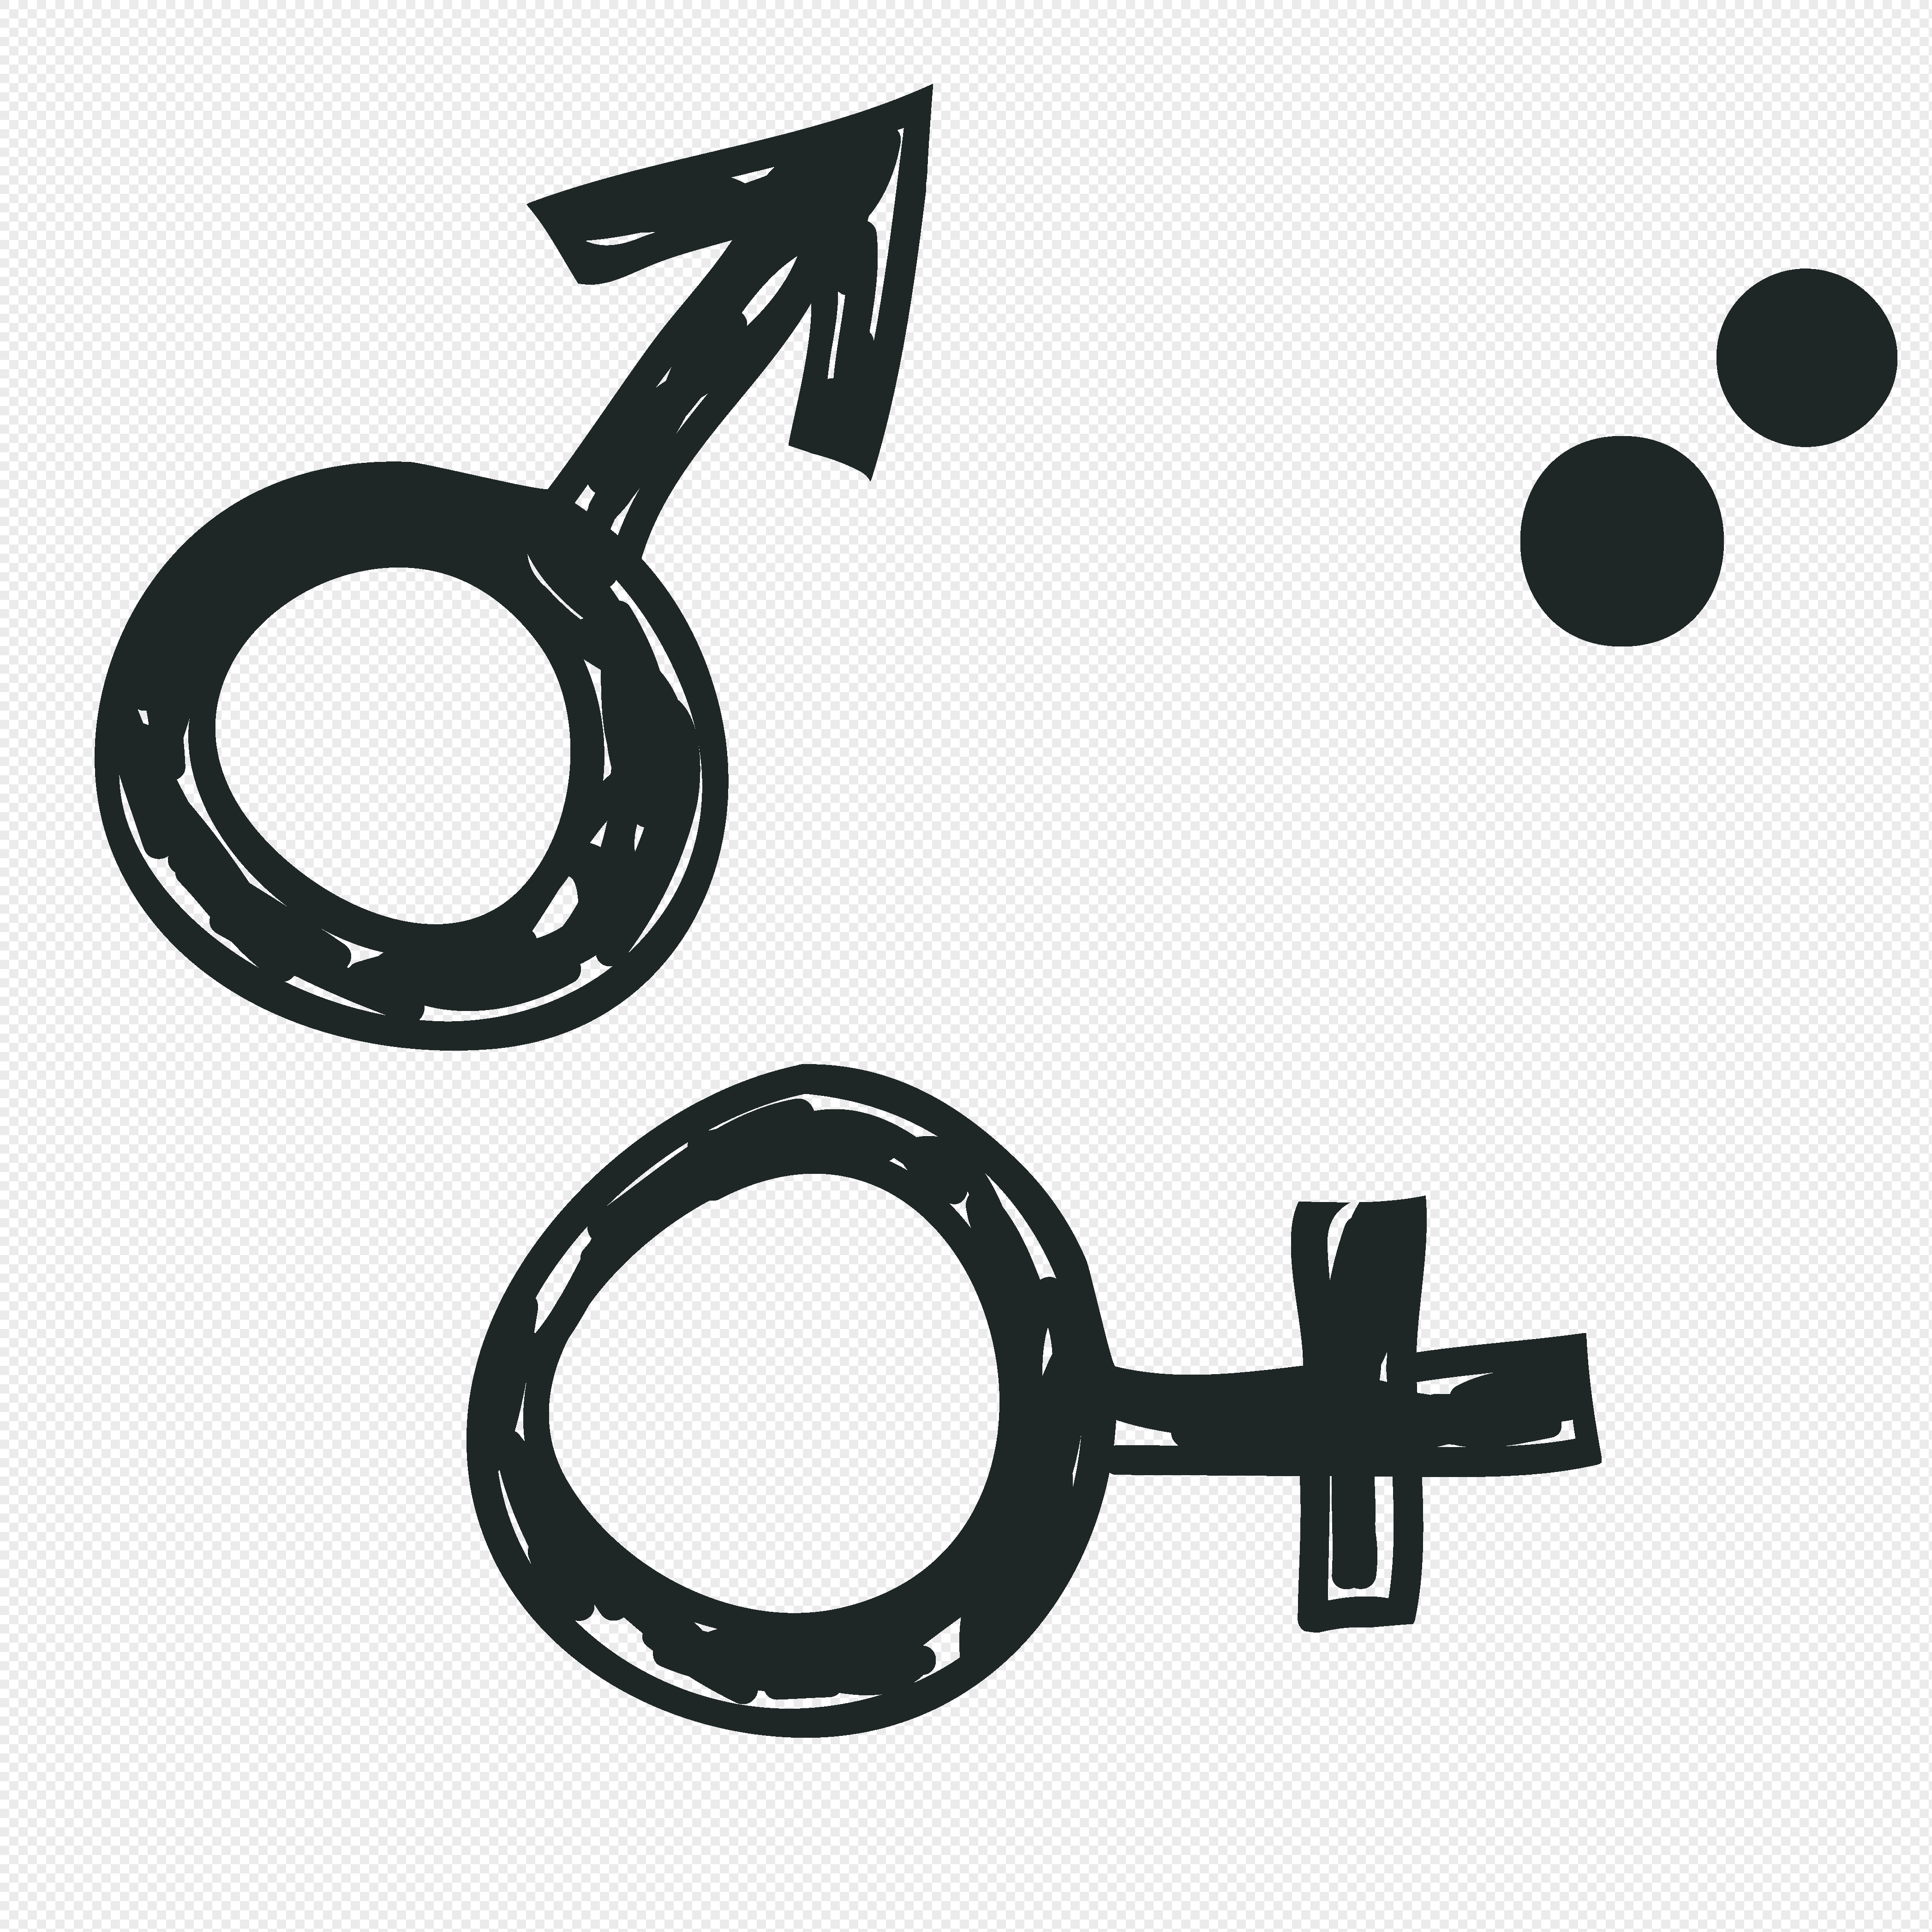 Male And Female Symbols Png Imagepicture Free Download